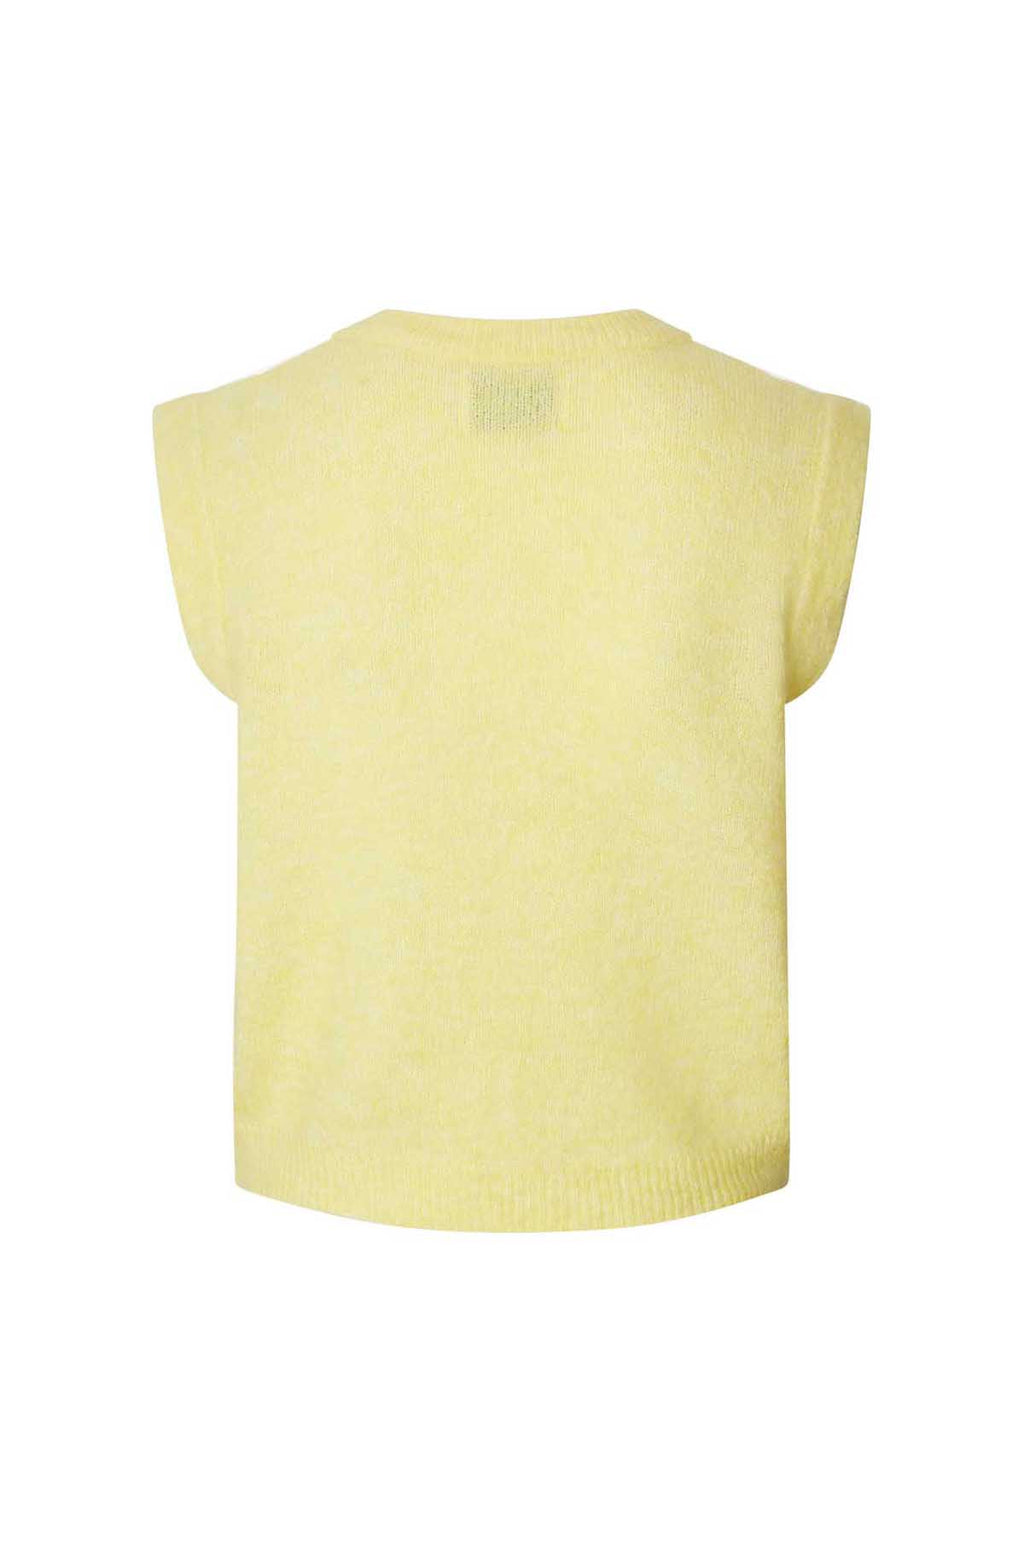 Sam Knitted Vest in Light Yellow